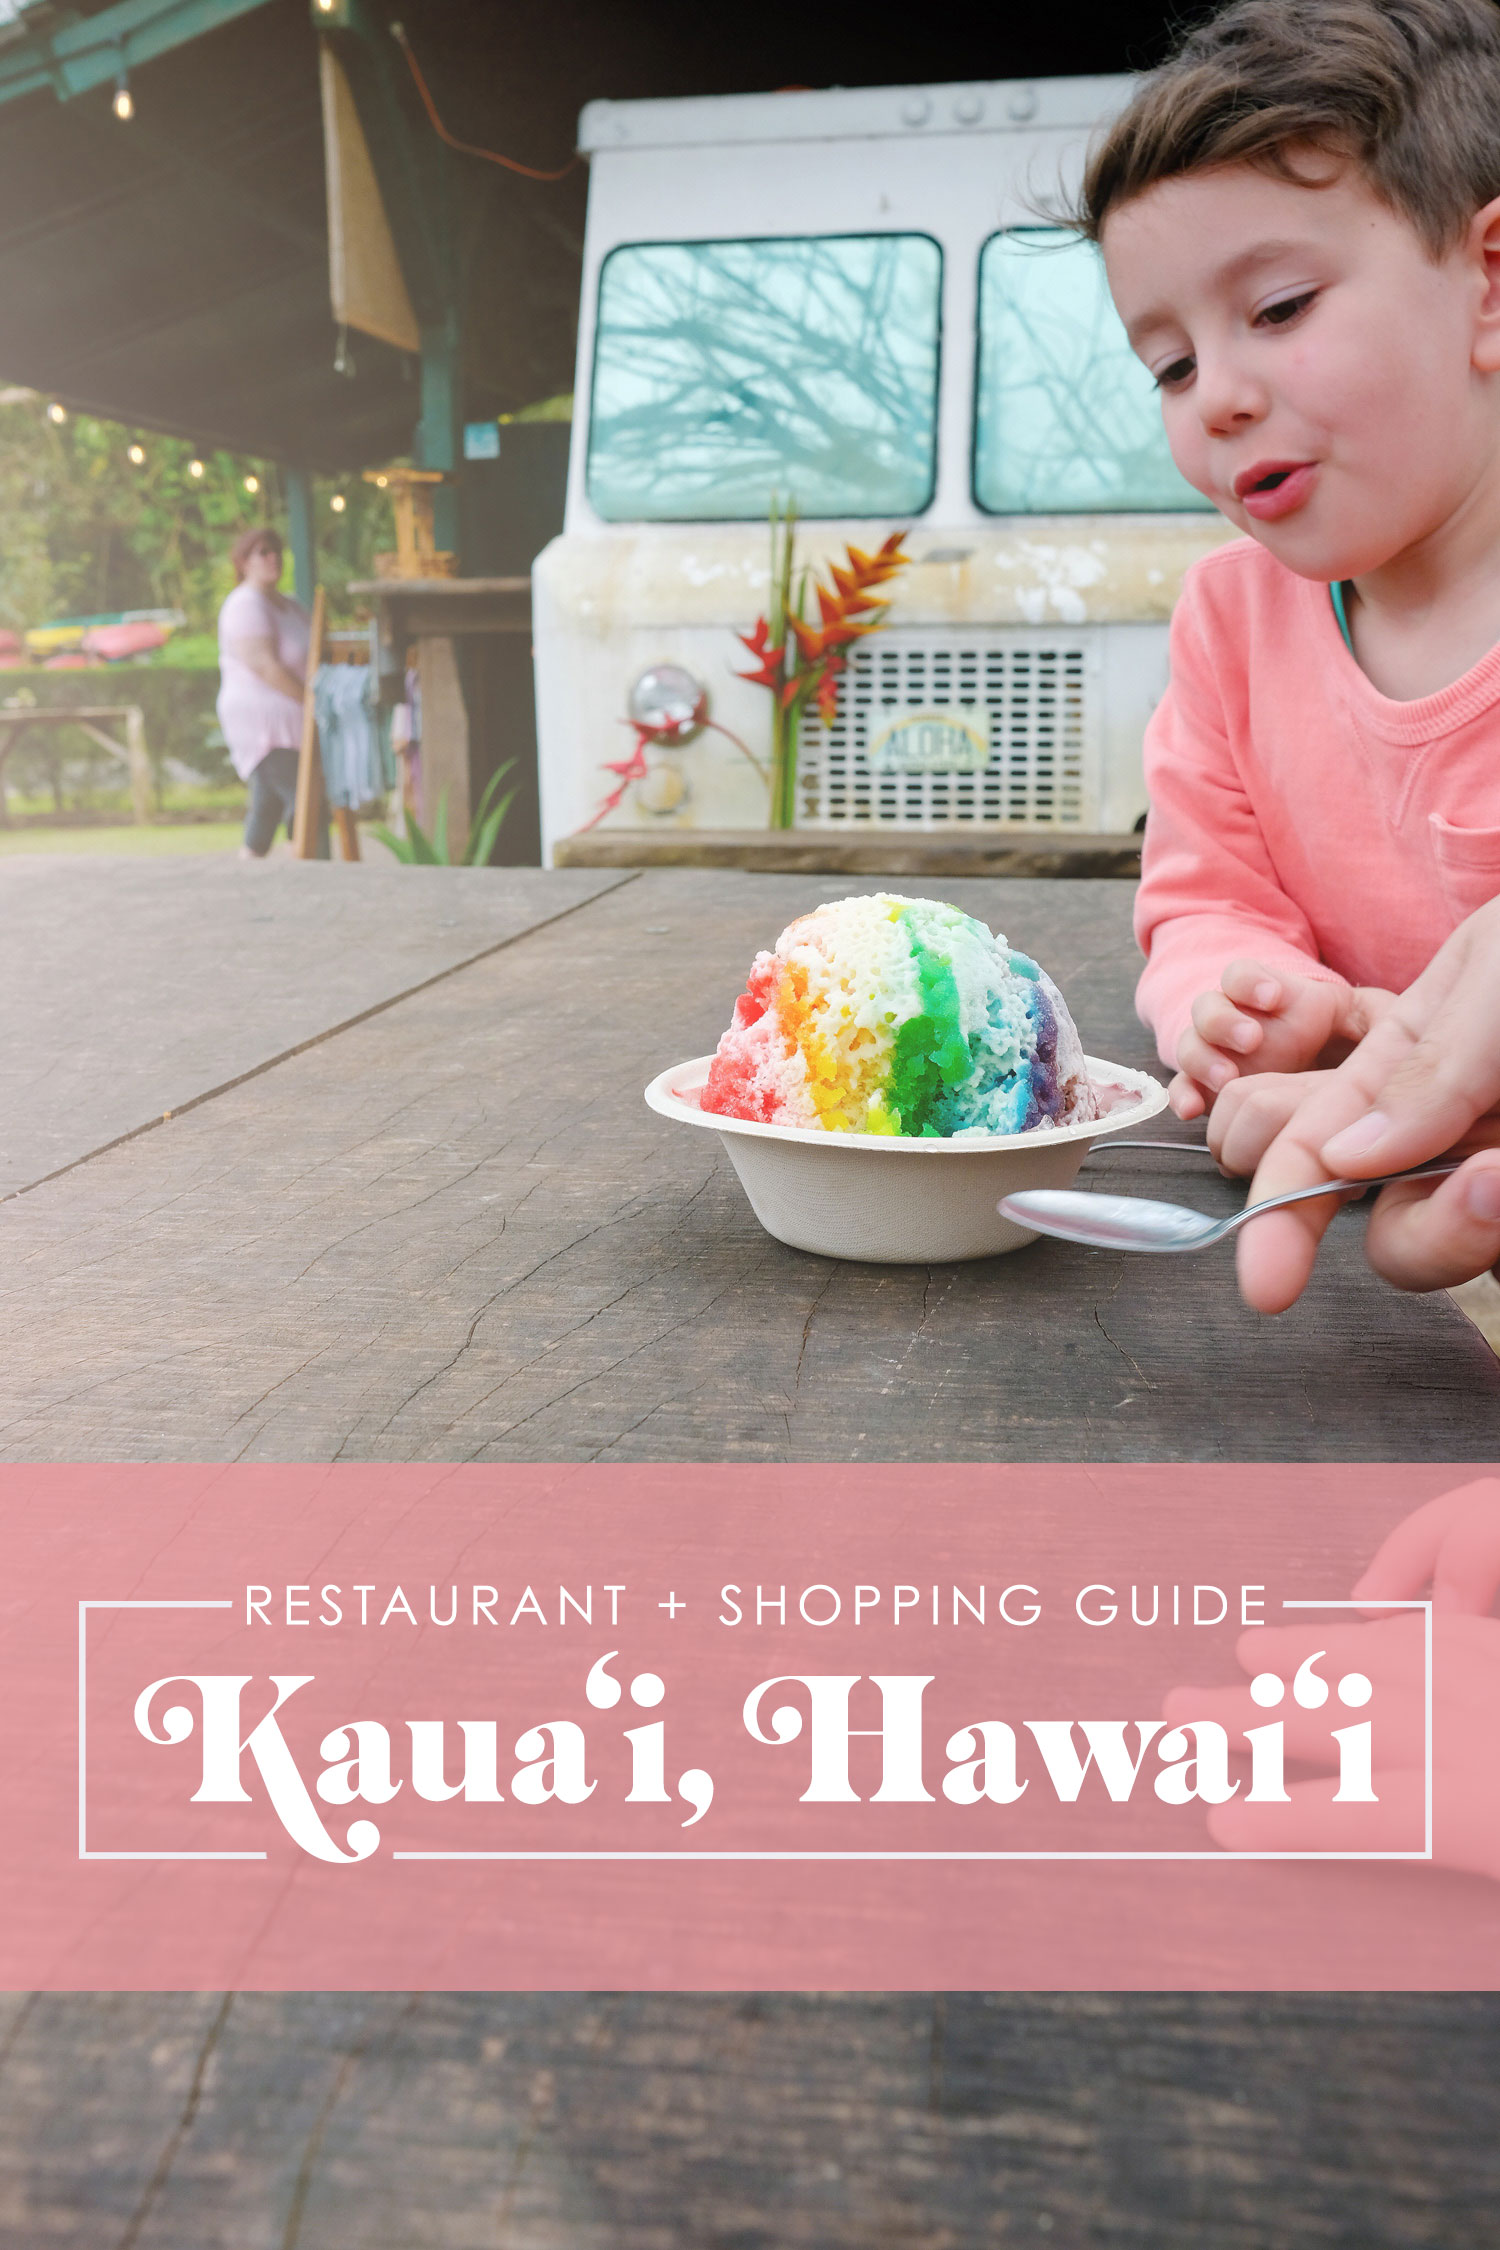 Kauai Restaurant and Shopping Guide